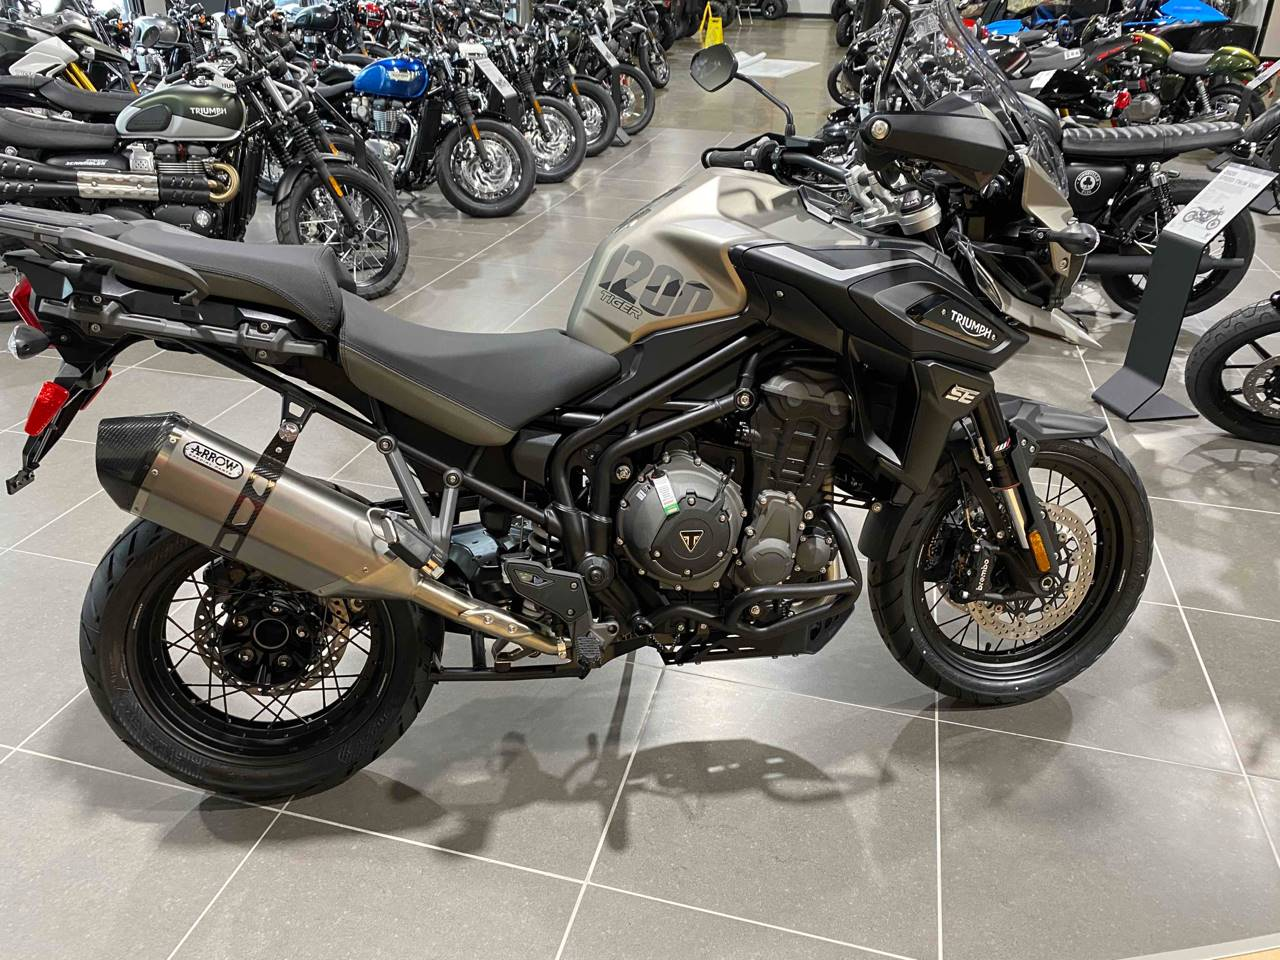 2020 Triumph TIGER 1200 XC in Mooresville, North Carolina - Photo 2